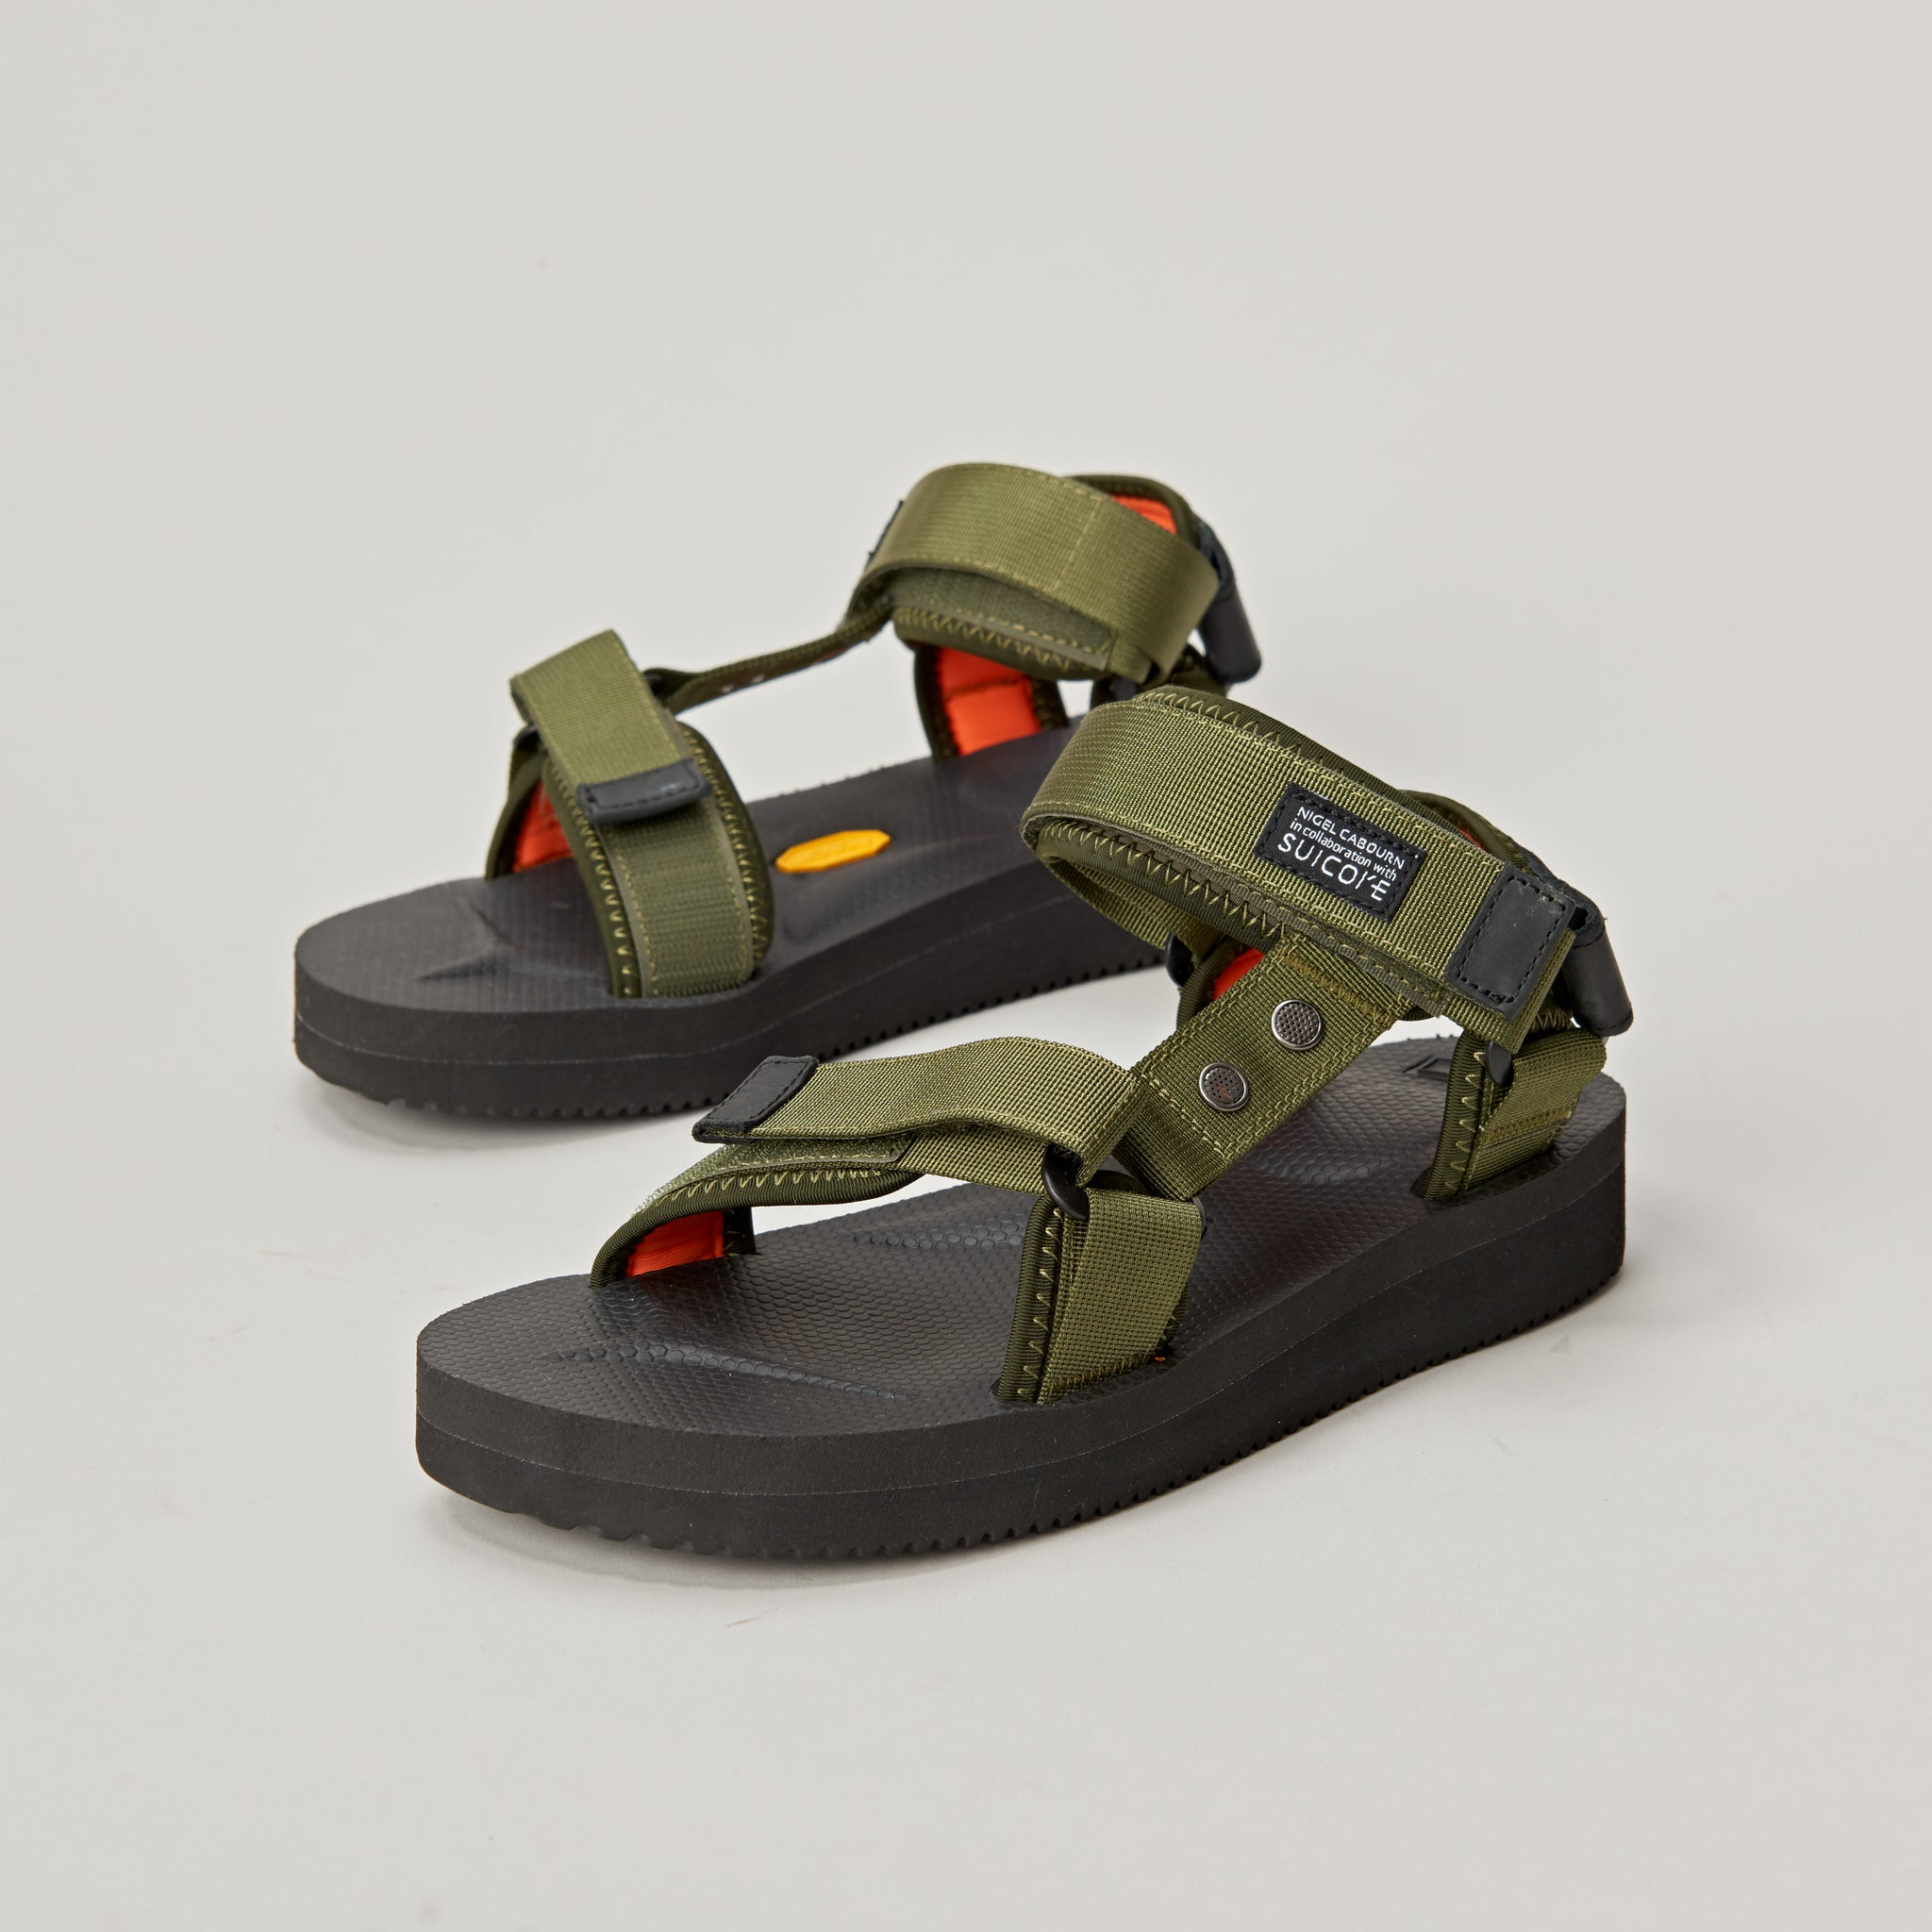 036447f6d160 SUICOKE x NIGEL CABOURN SANDALS - NAM GREEN – Pickings and Parry